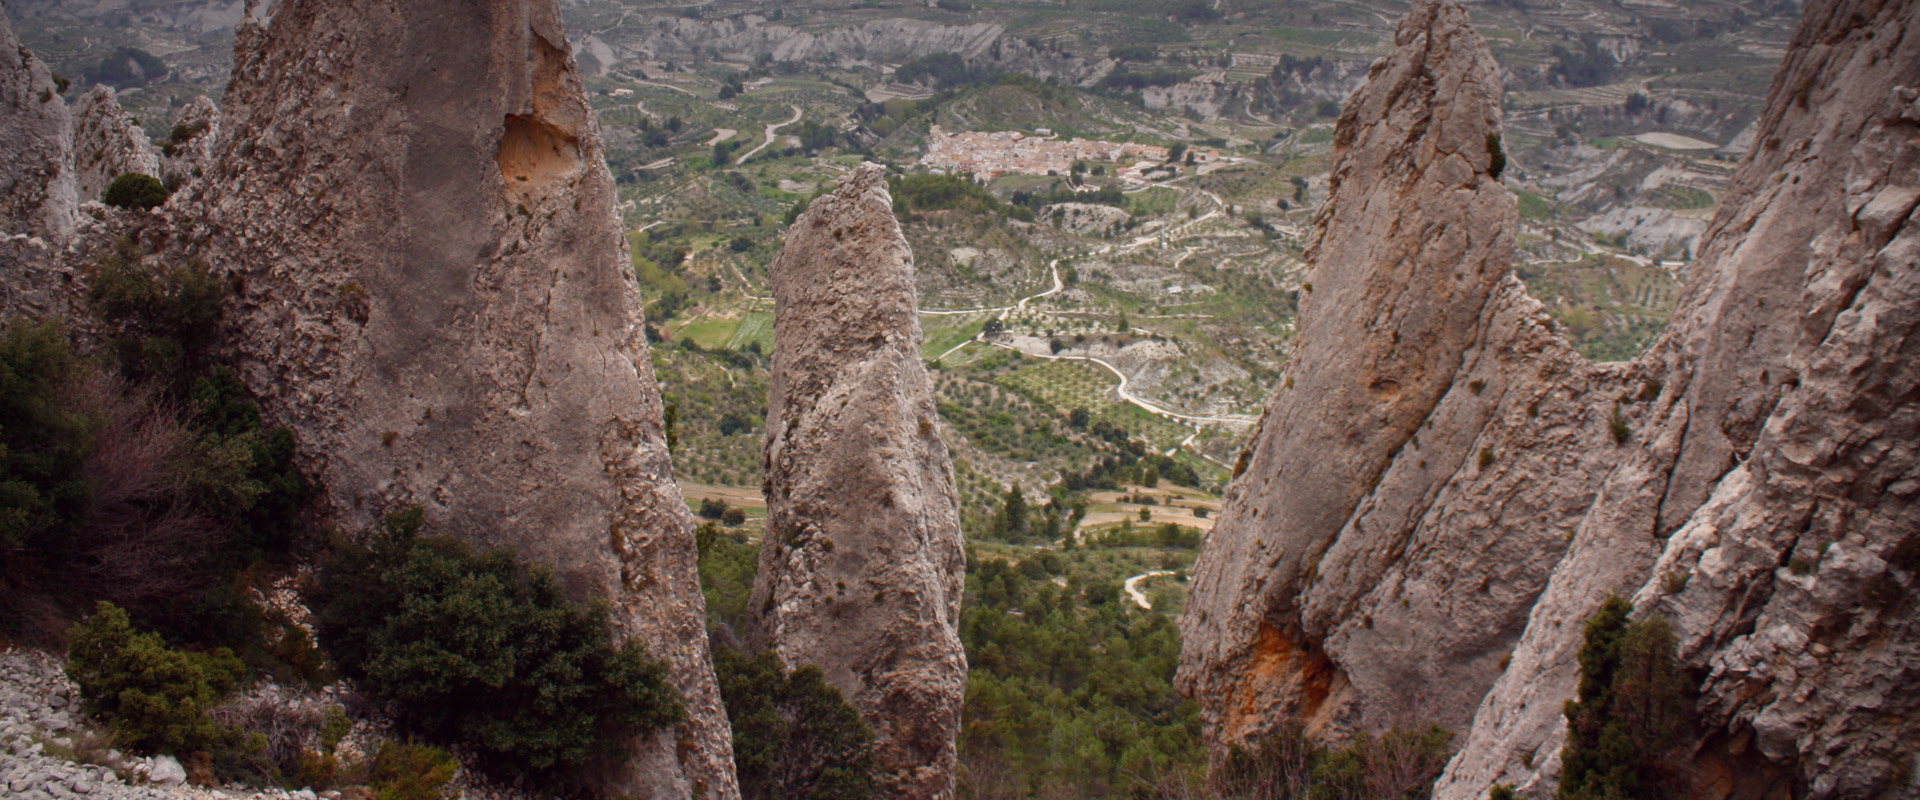 The Frares of Quatretondeta. Serrella mountain